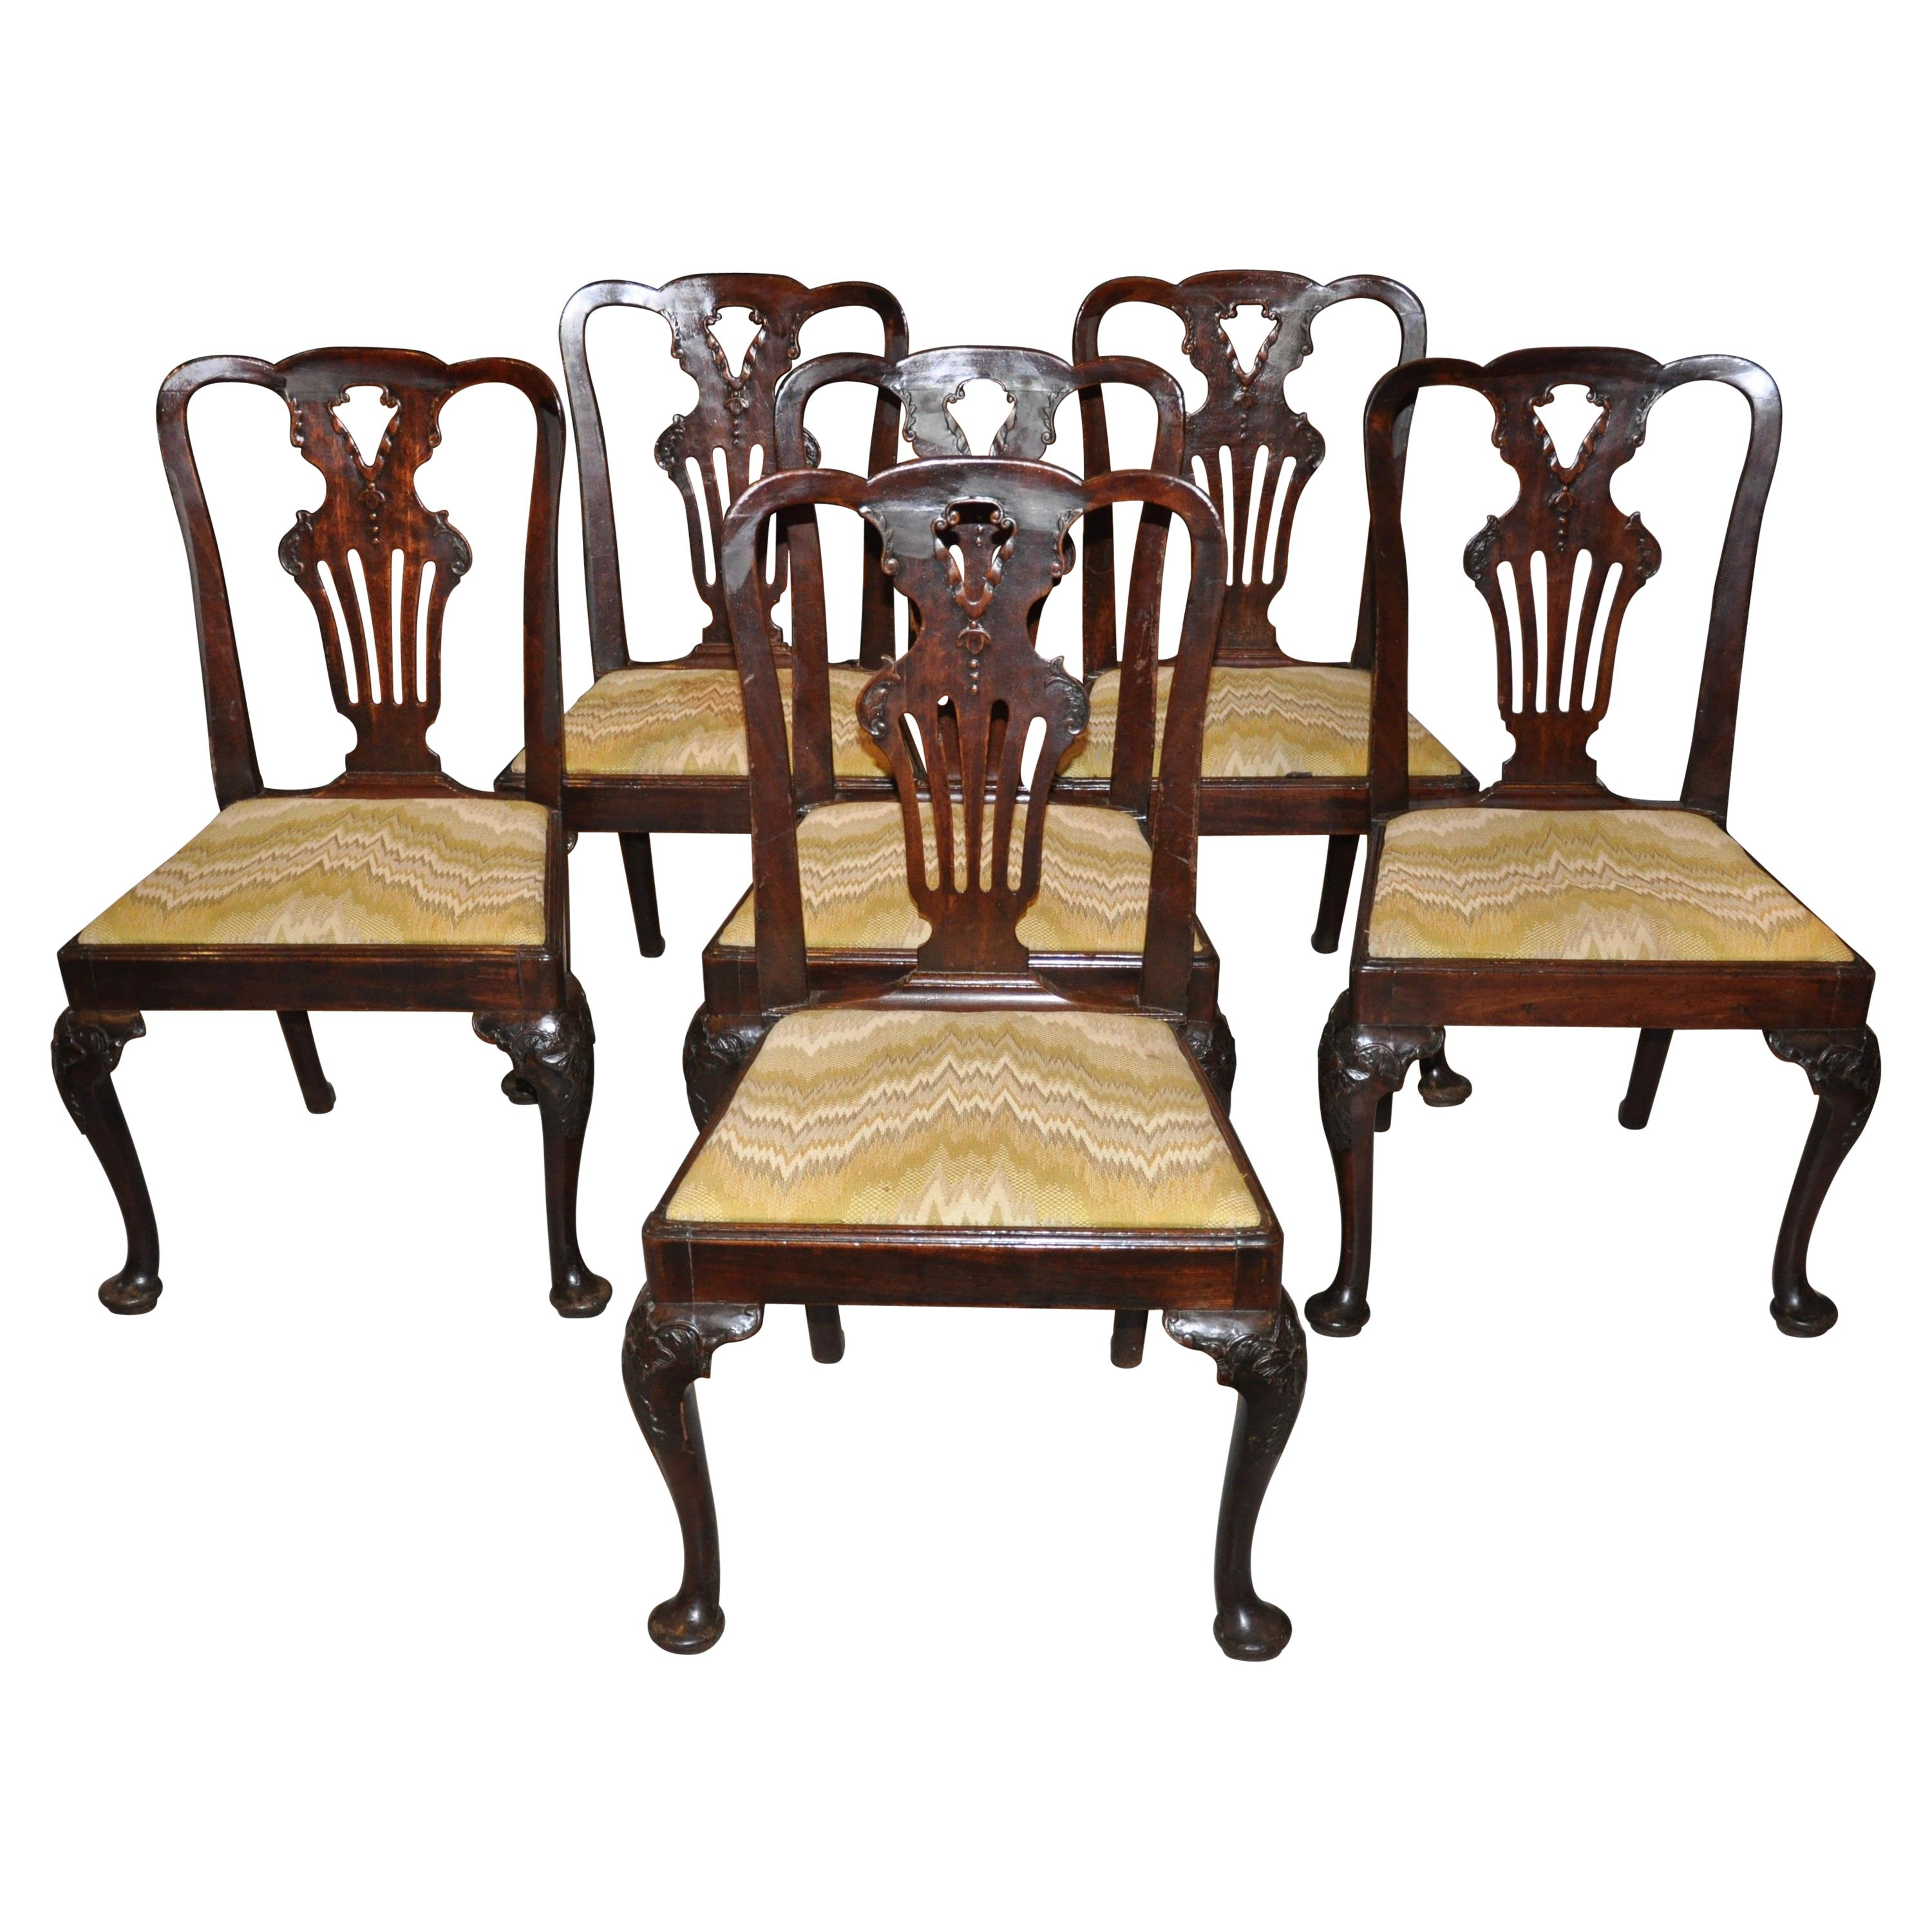 Set of Six Period 18th Century George II Walnut Dining Chairs